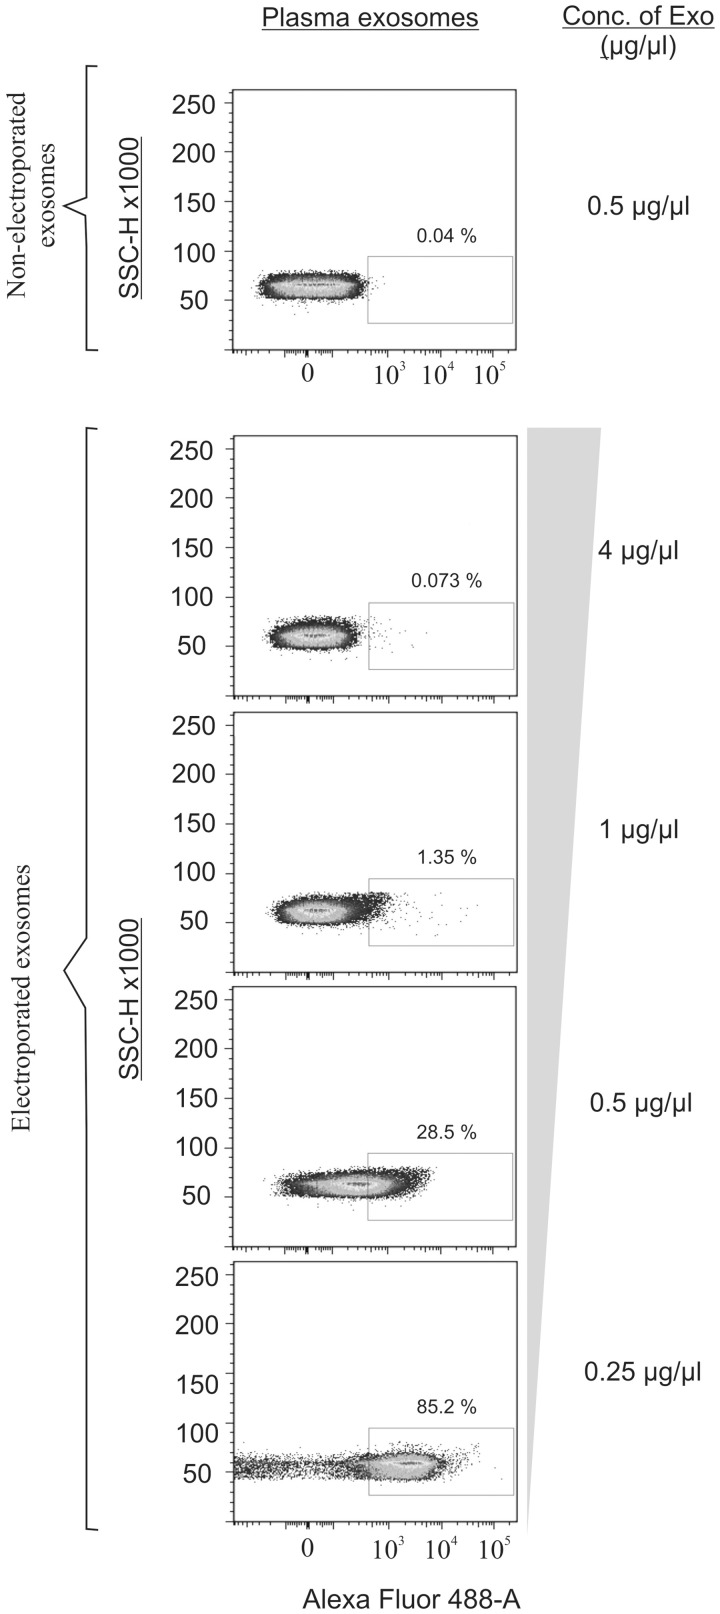 Exosome concentration affects electroporation efficiency. To determine the optimal exosome concentration for <t>transfection,</t> exosomes at four different concentrations (0.25–4 µg/µl) were mixed with an Alexa Fluor 488-tagged siRNA (2 nmol/ml) and electroporated. Samples containing exosomes and siRNA, without an electric pulse, were used as a negative control. To eliminate the excess siRNA, the exosomes were purified using latex beads and the presence of siRNA in the exosomes was determined by FACS analysis.